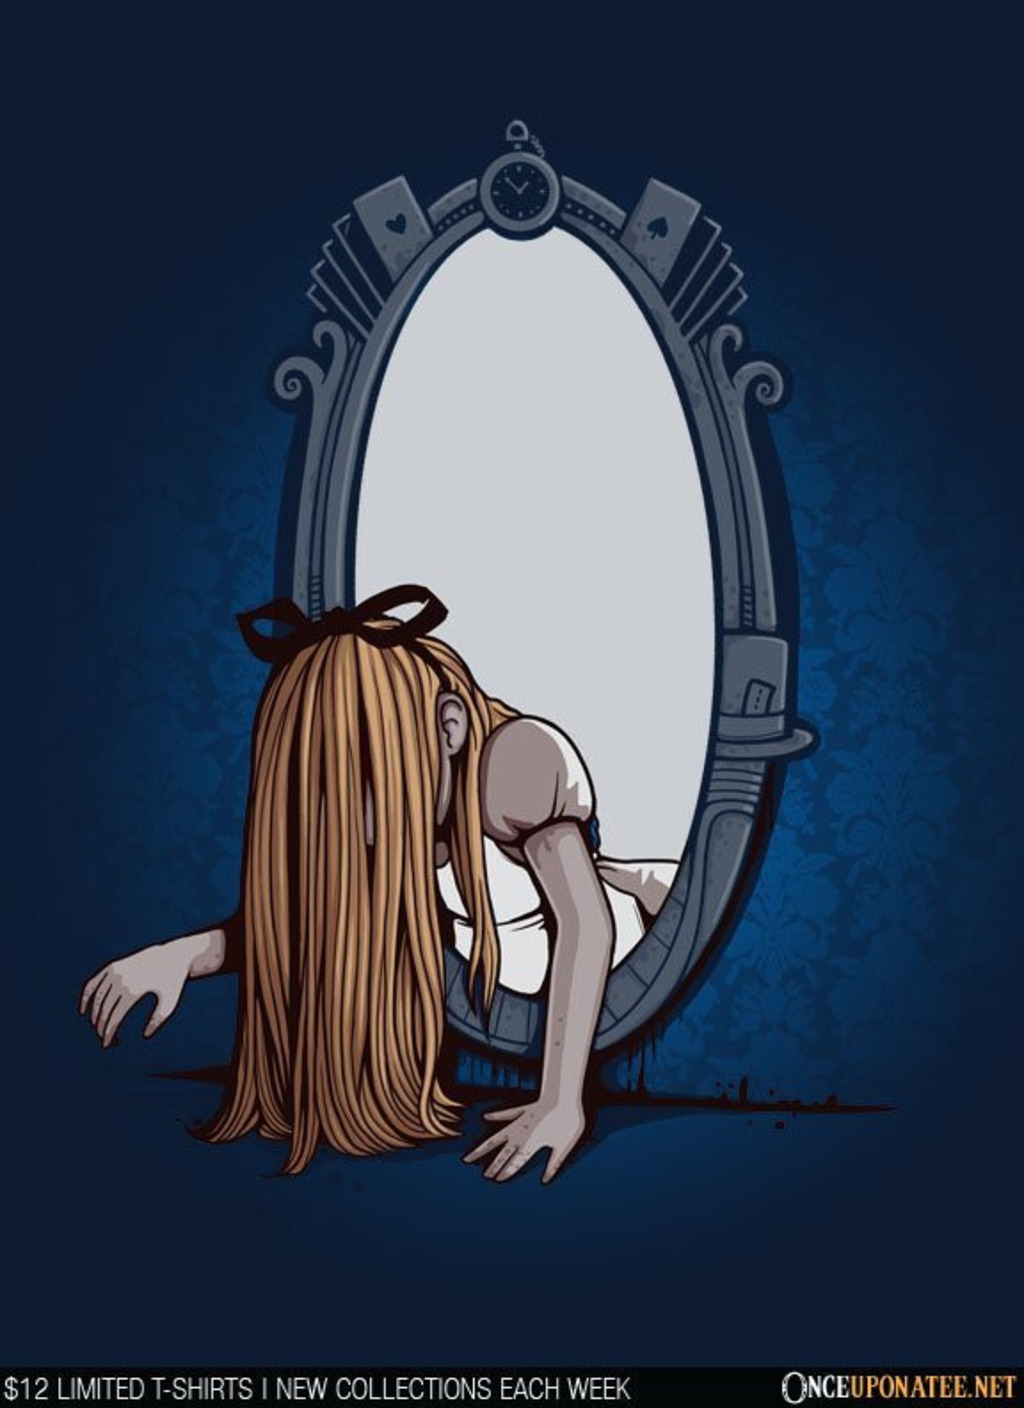 Once Upon a Tee: The Looking Glass